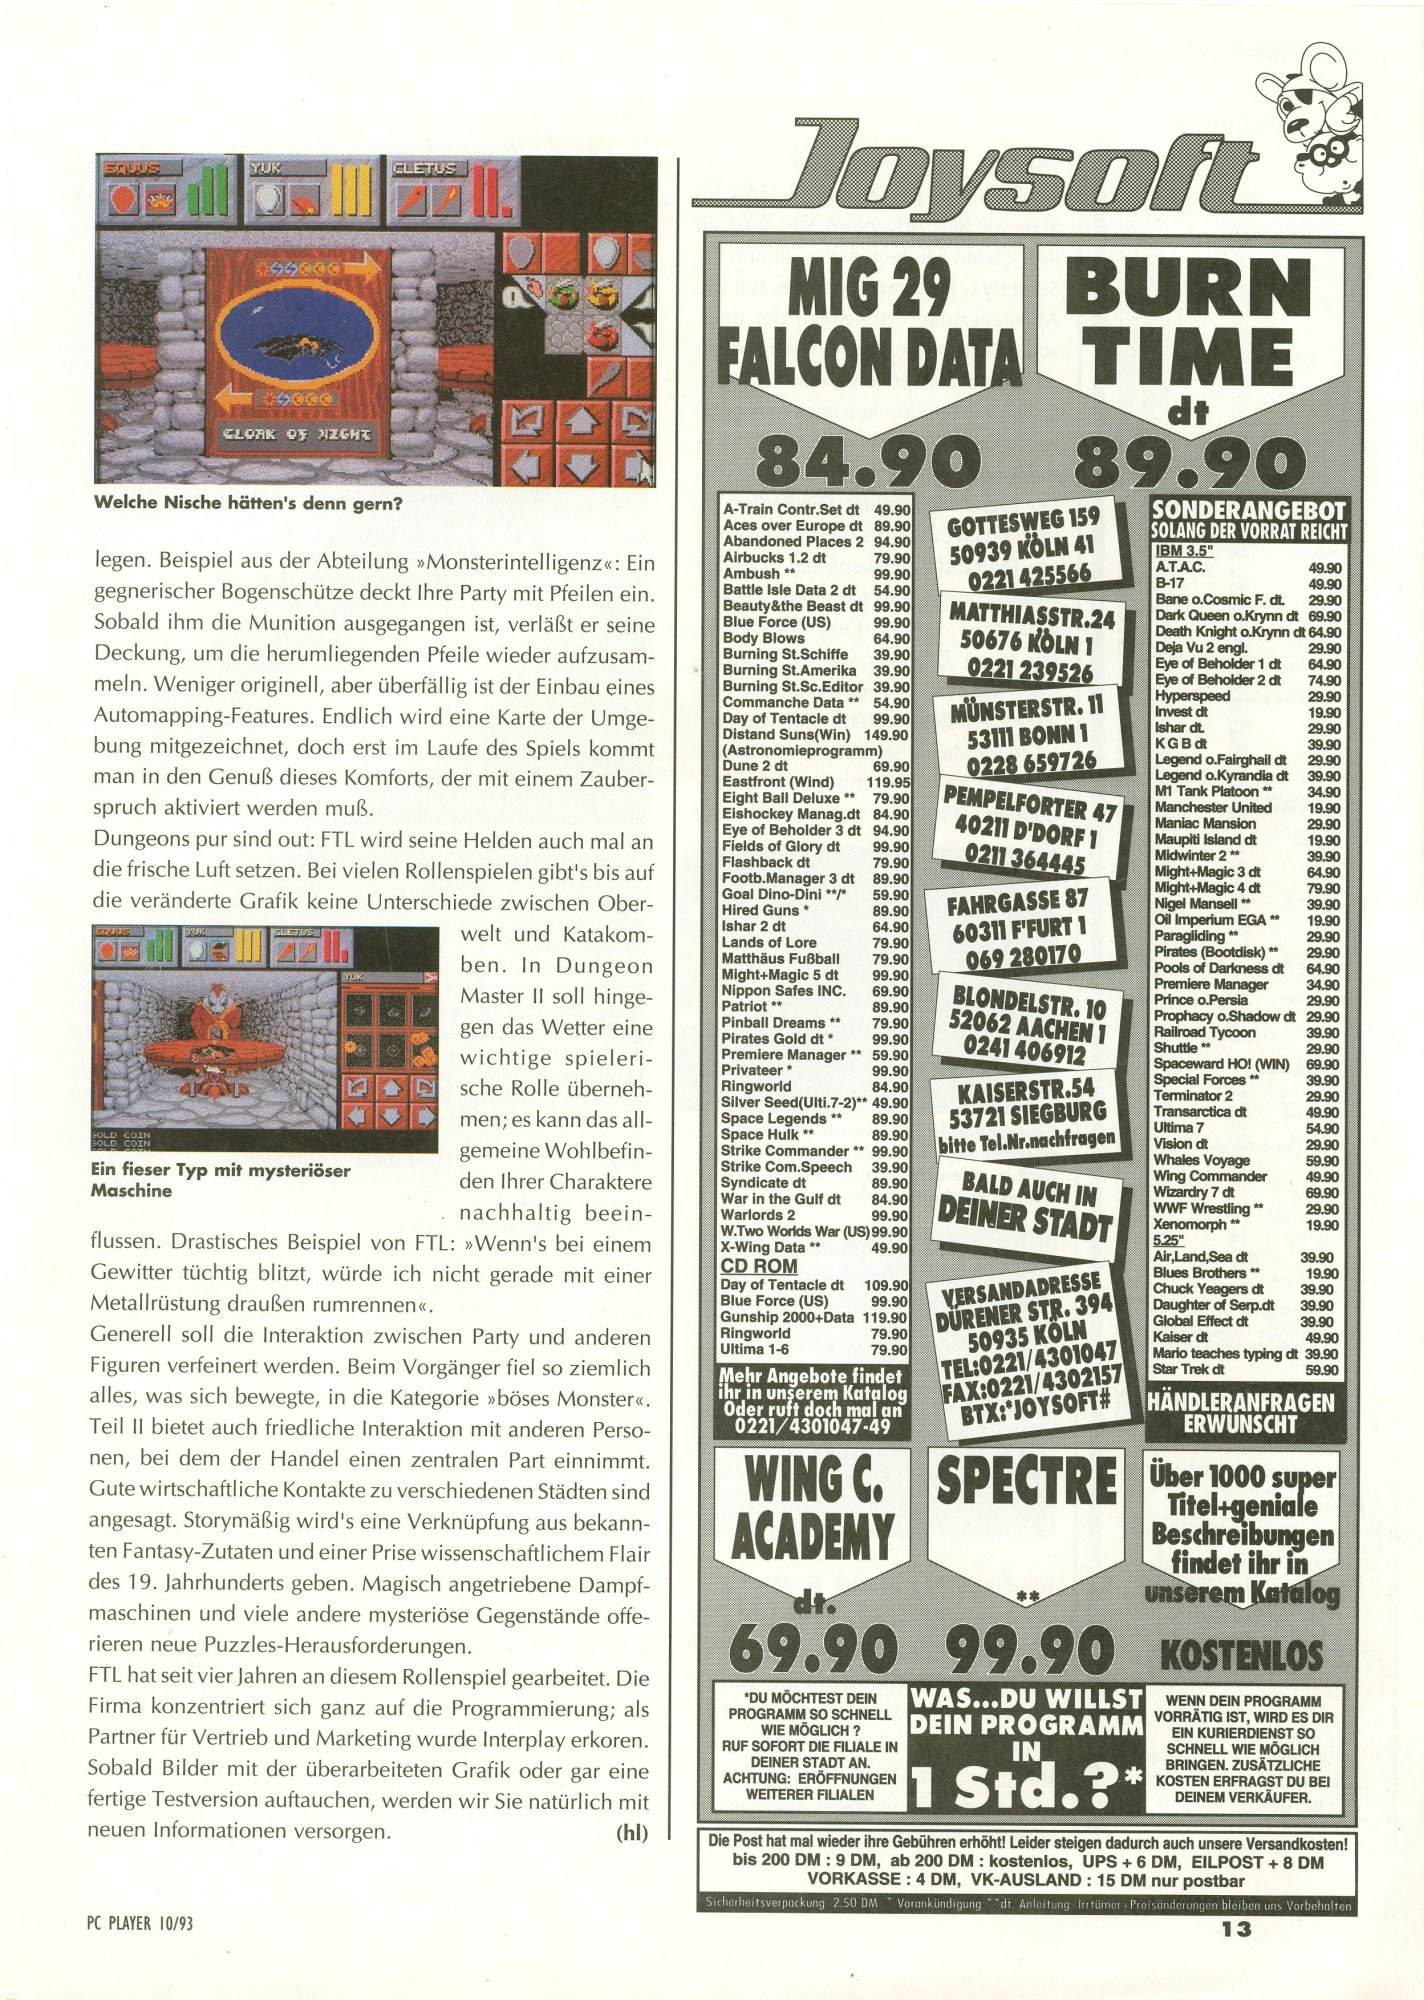 Dungeon Master II for PC Preview published in German magazine 'PC Player', October 1993, Page 13